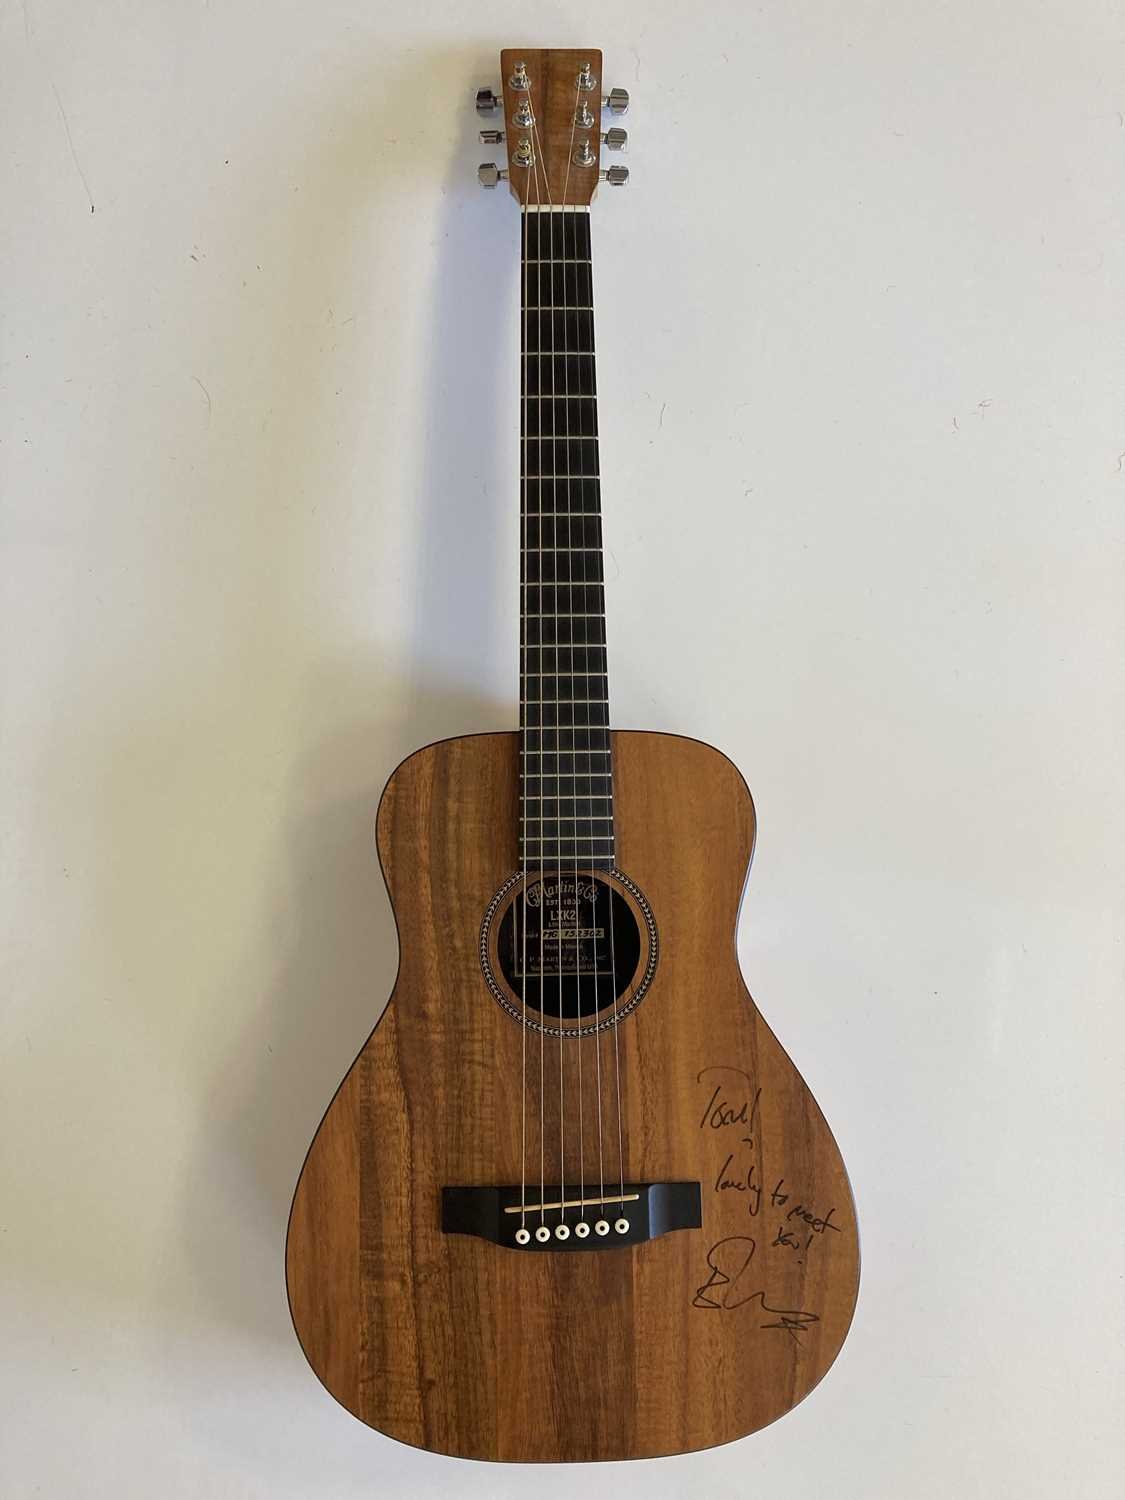 ED SHEERAN SIGNED AND USED GUITAR. - Image 7 of 7